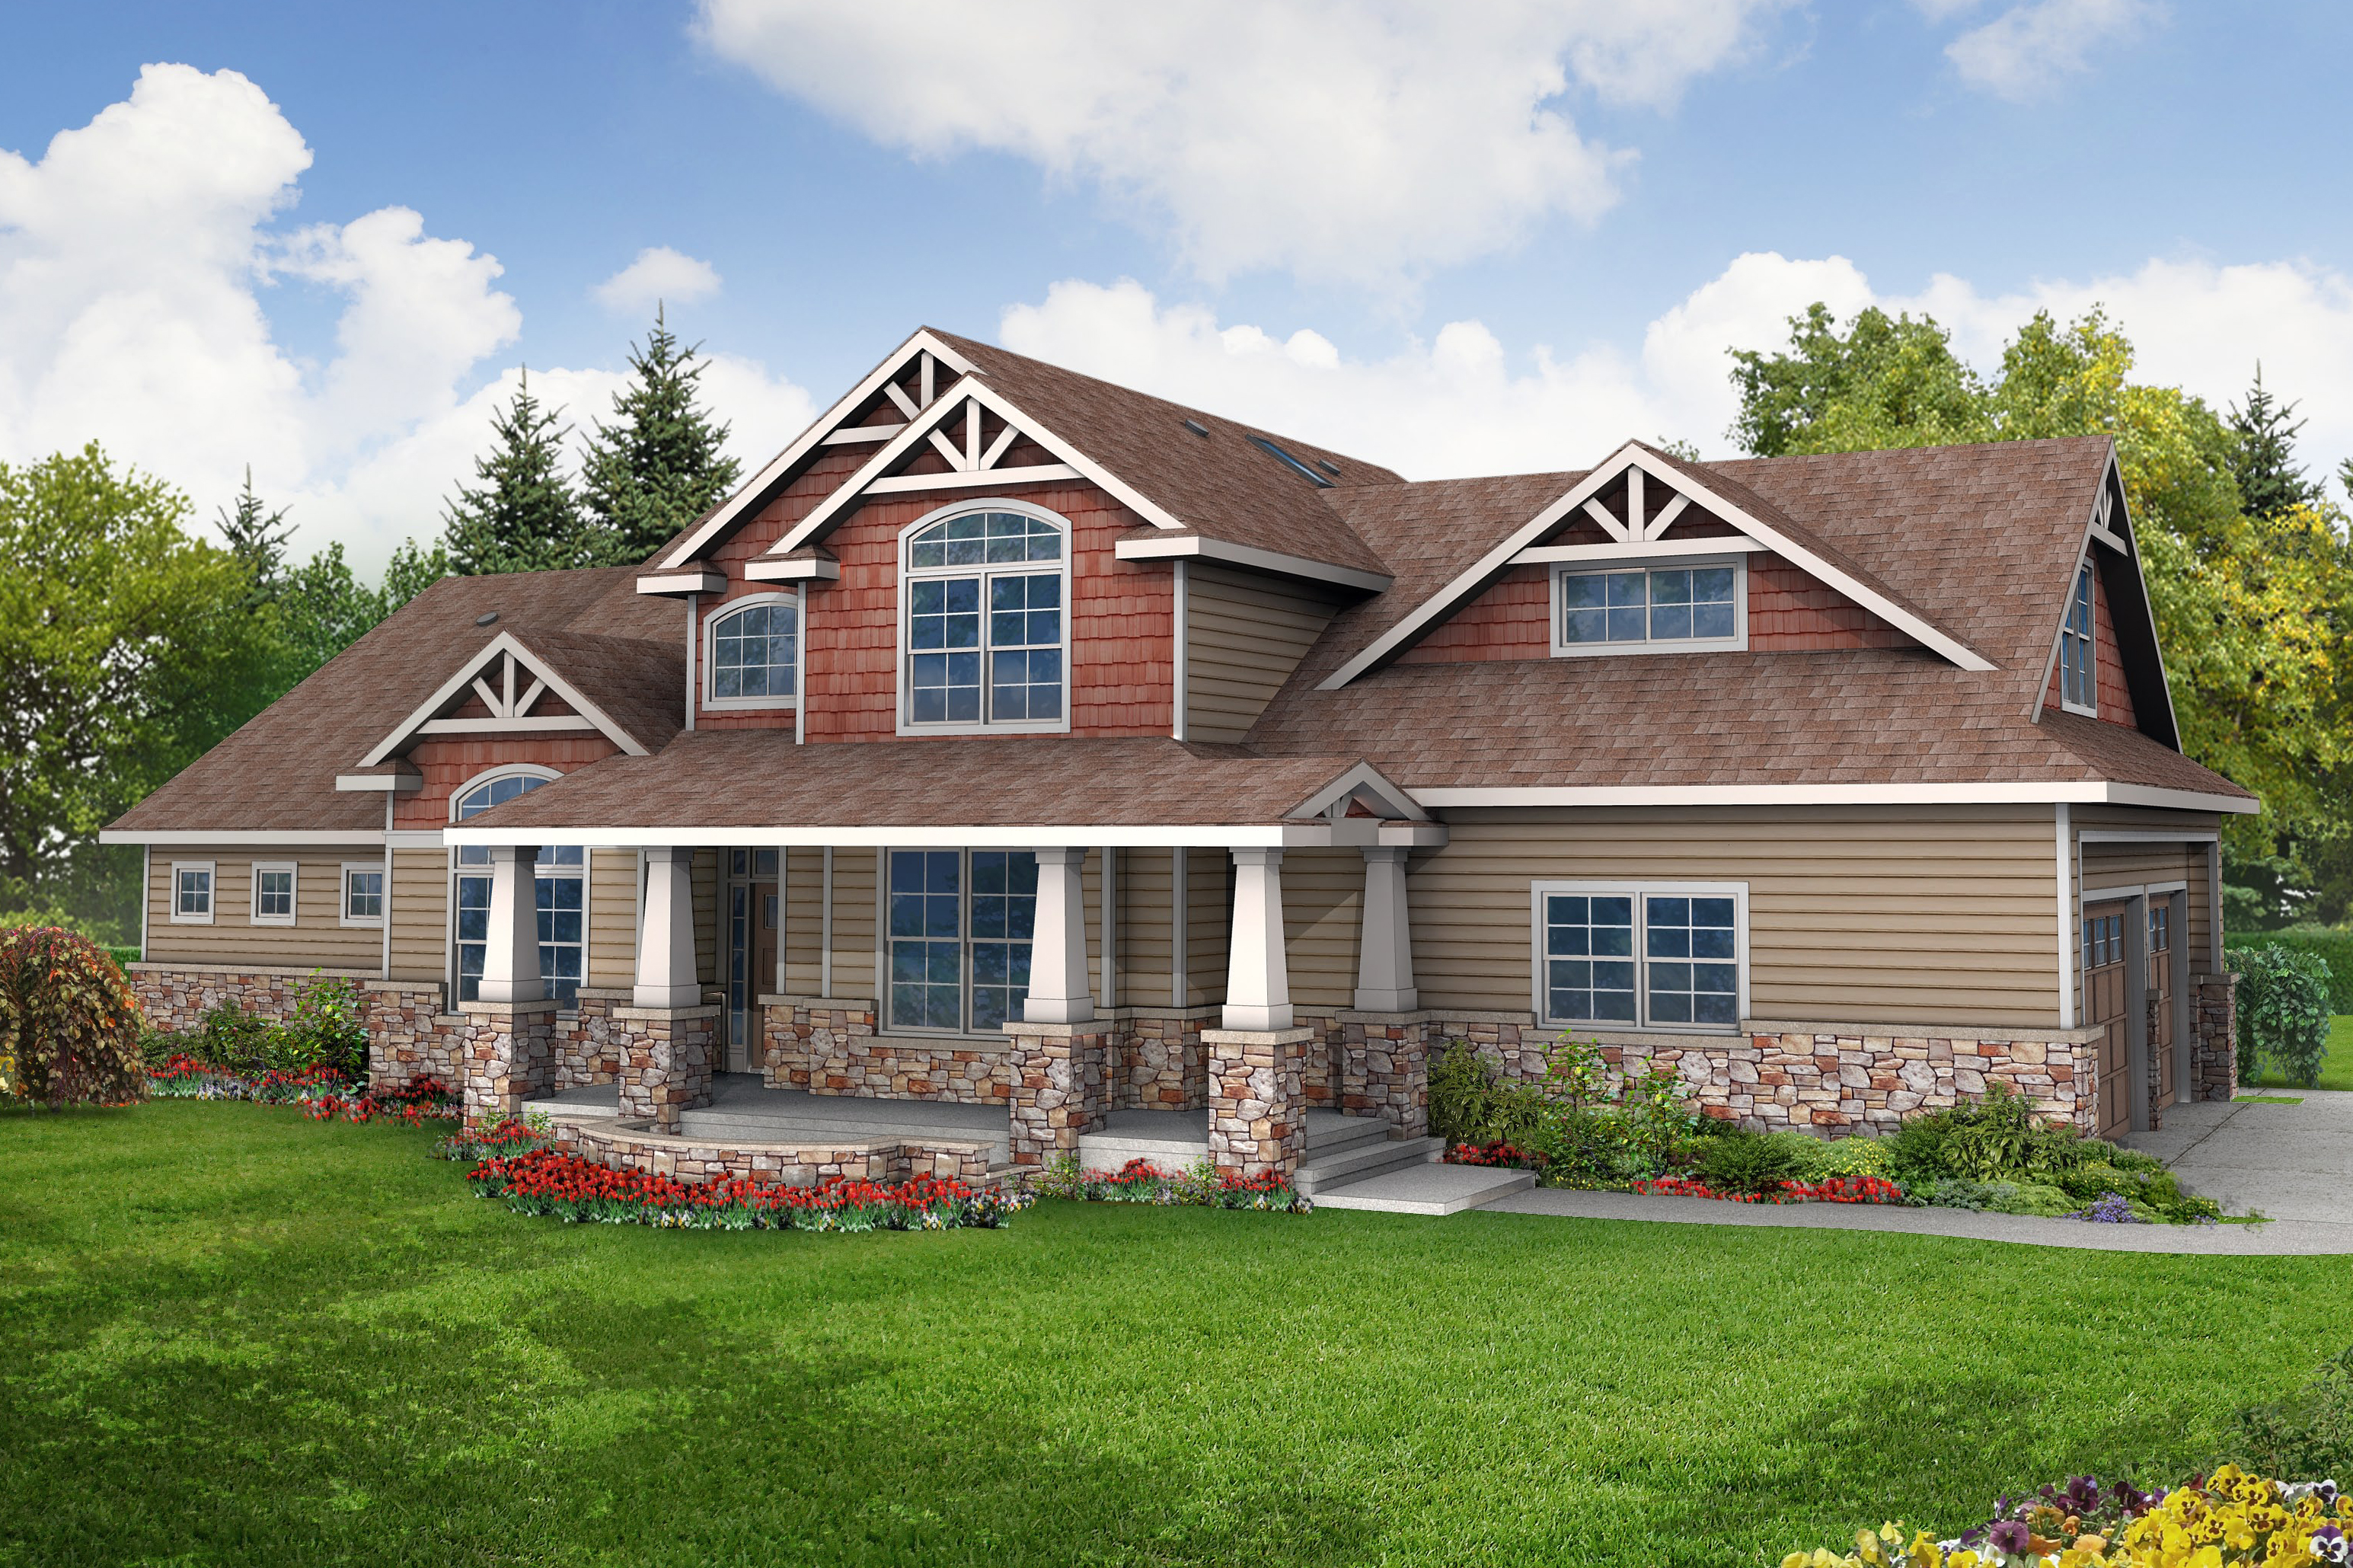 Craftsman house plans craftsman home plans craftsman for Styles of homes with pictures